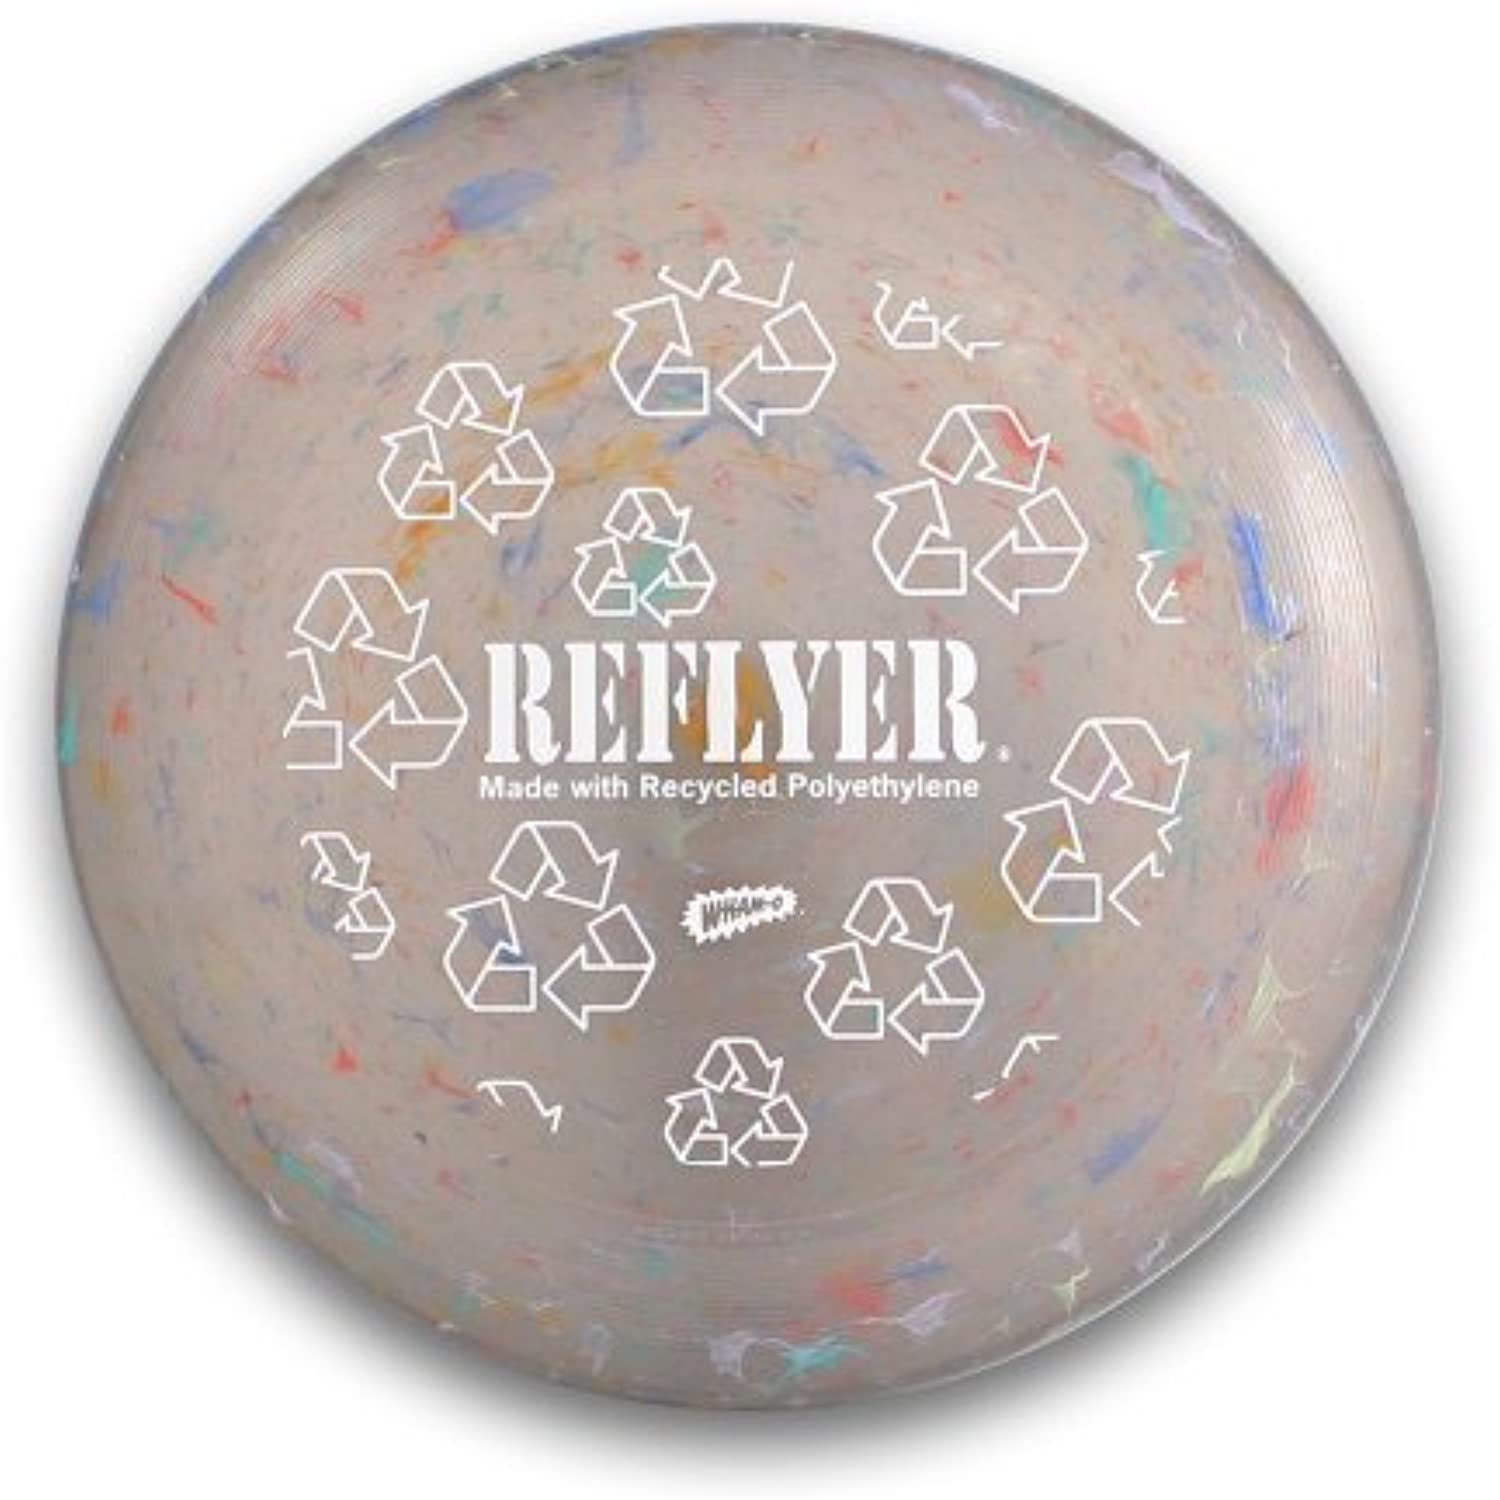 Reflyer 175 g Flying Disc by Discovering the World